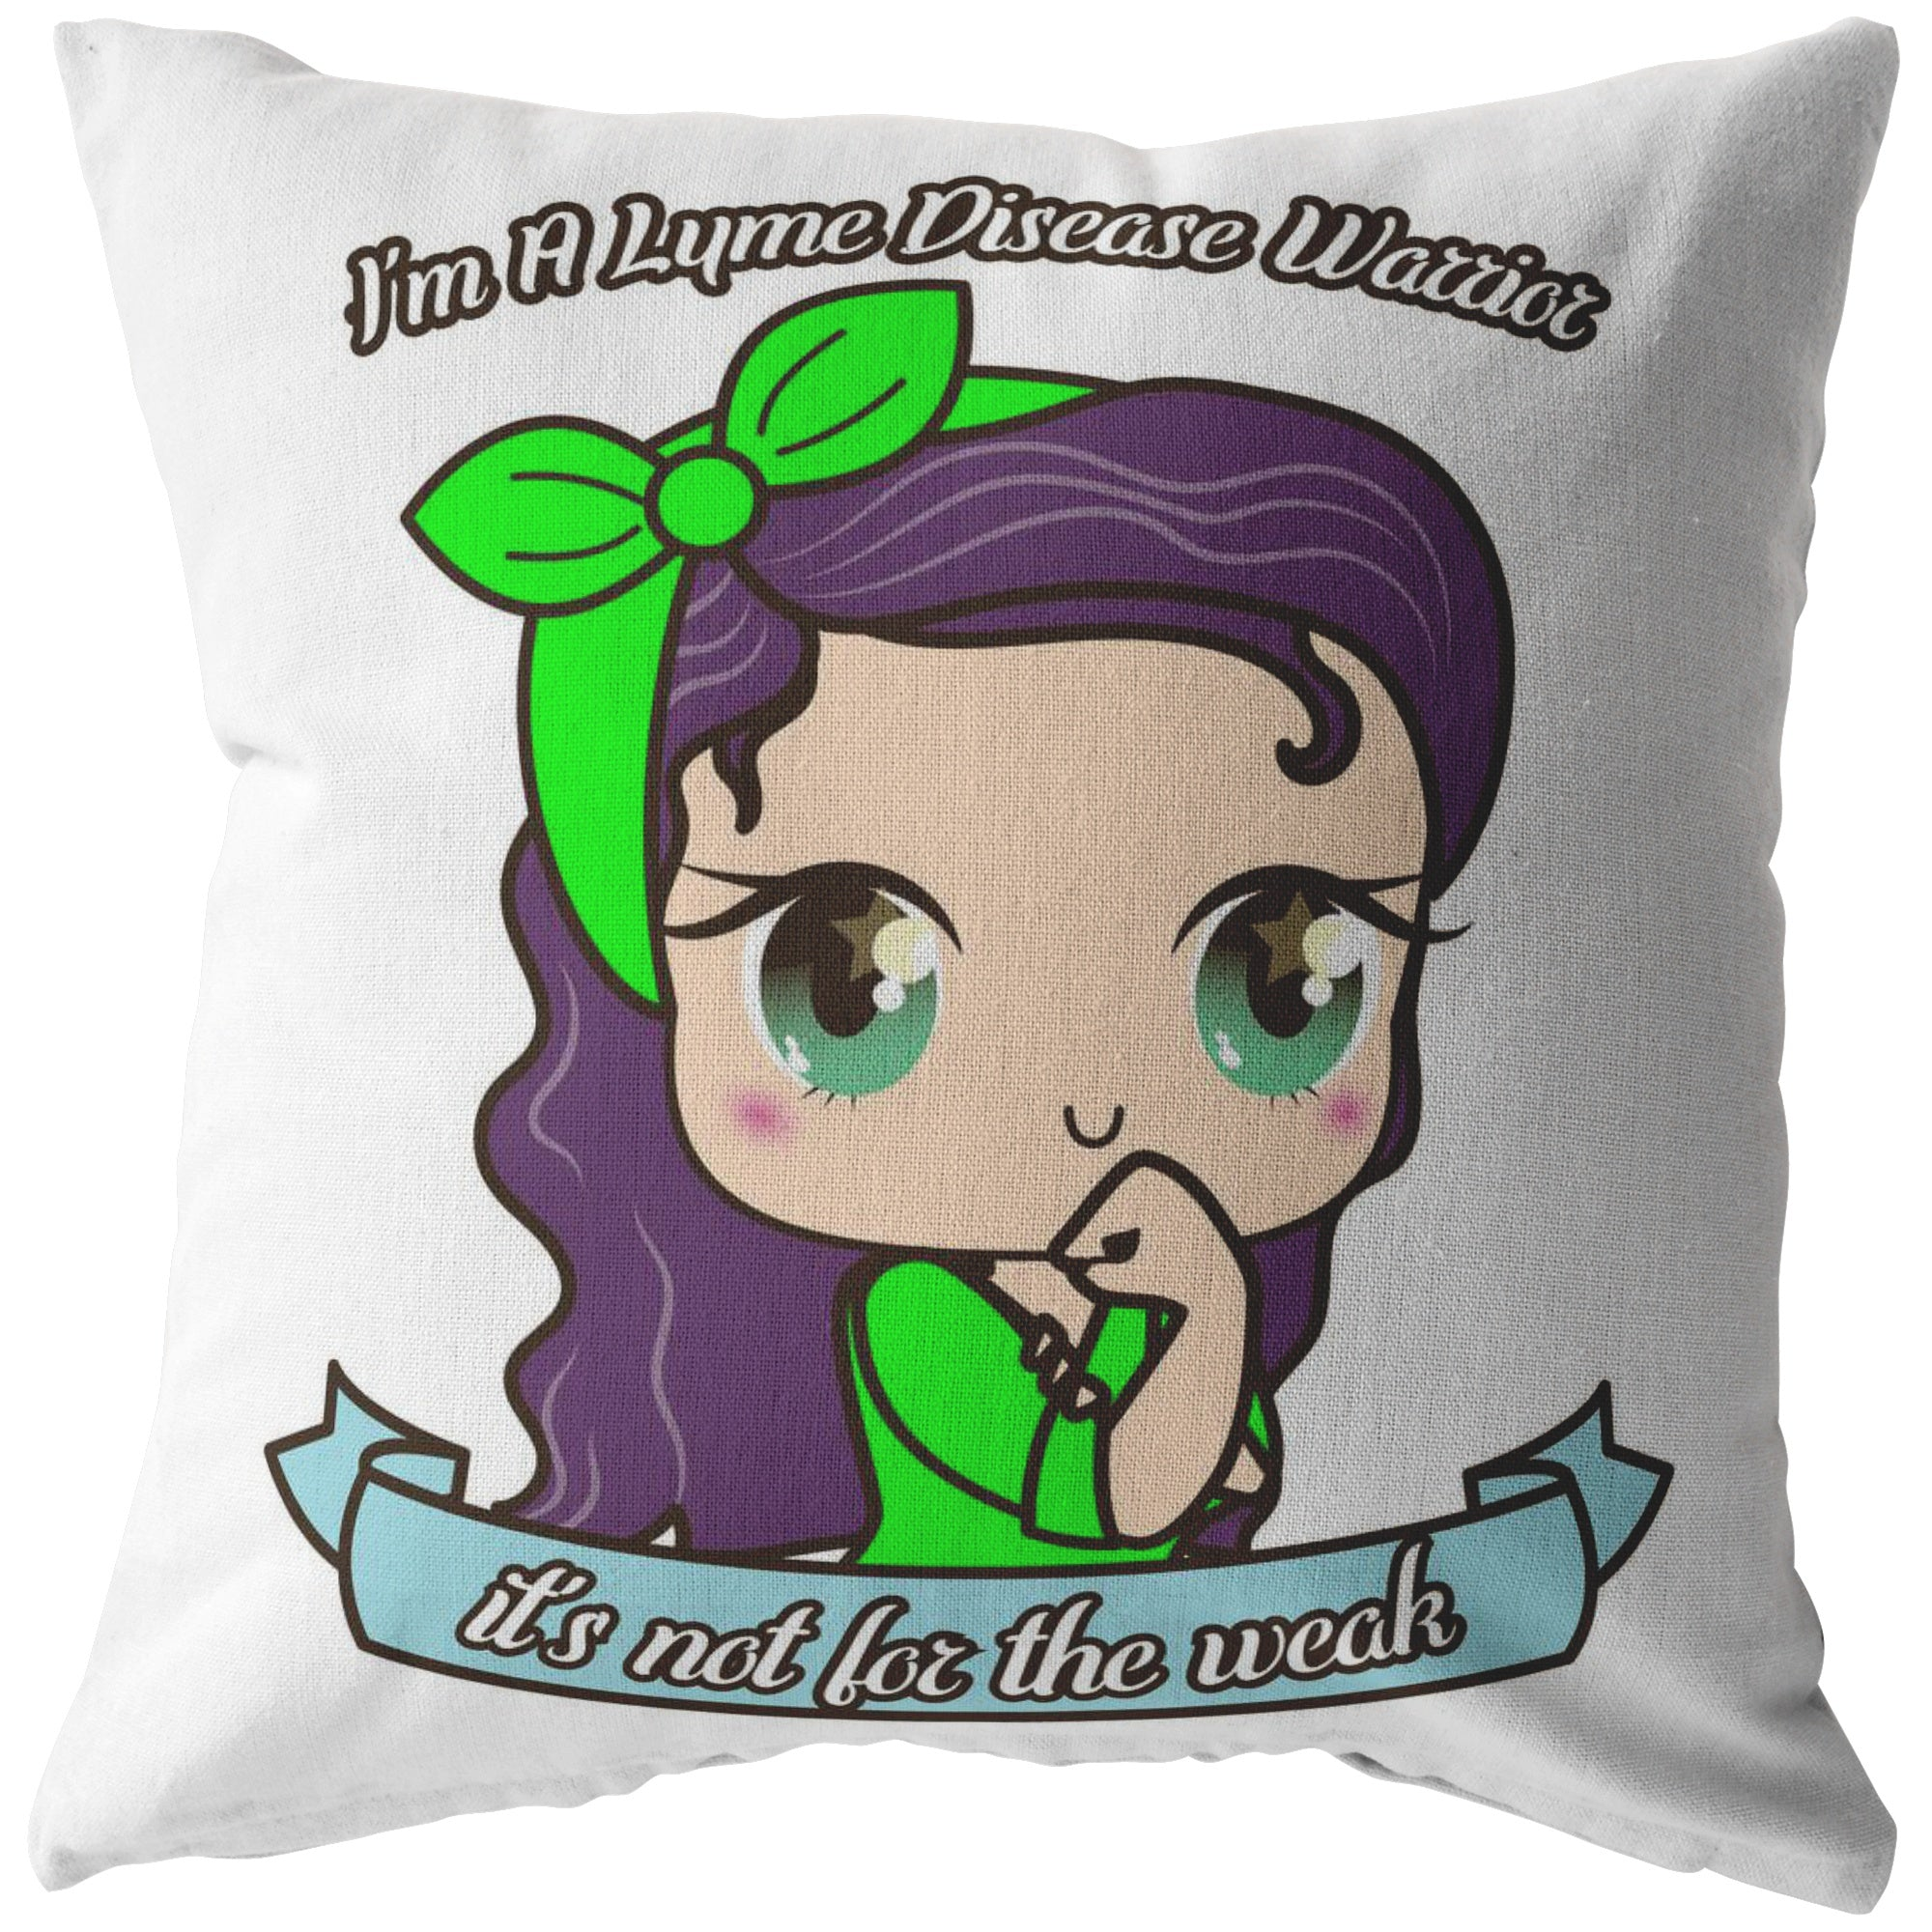 Cute Lyme Disease Warrior Pillow